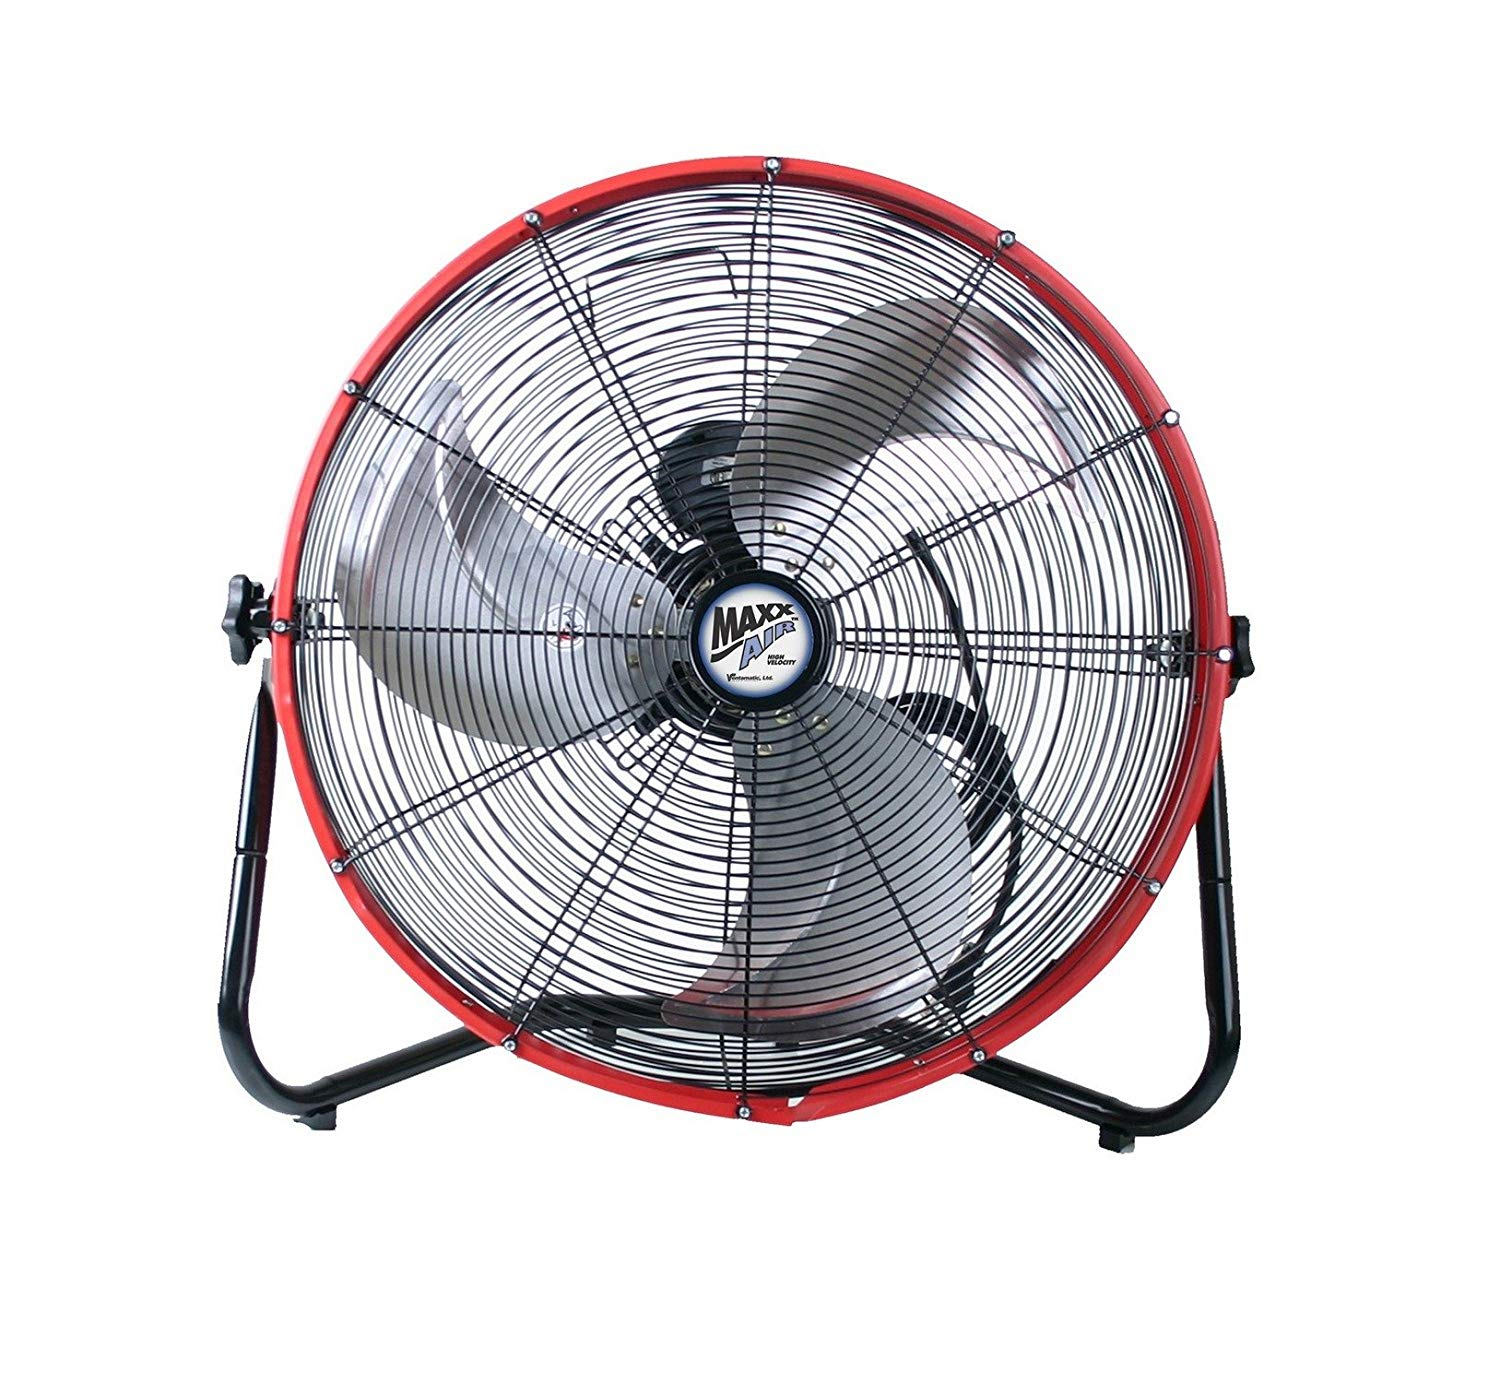 Top 5 Best Large Floor Fans In 2019 Review